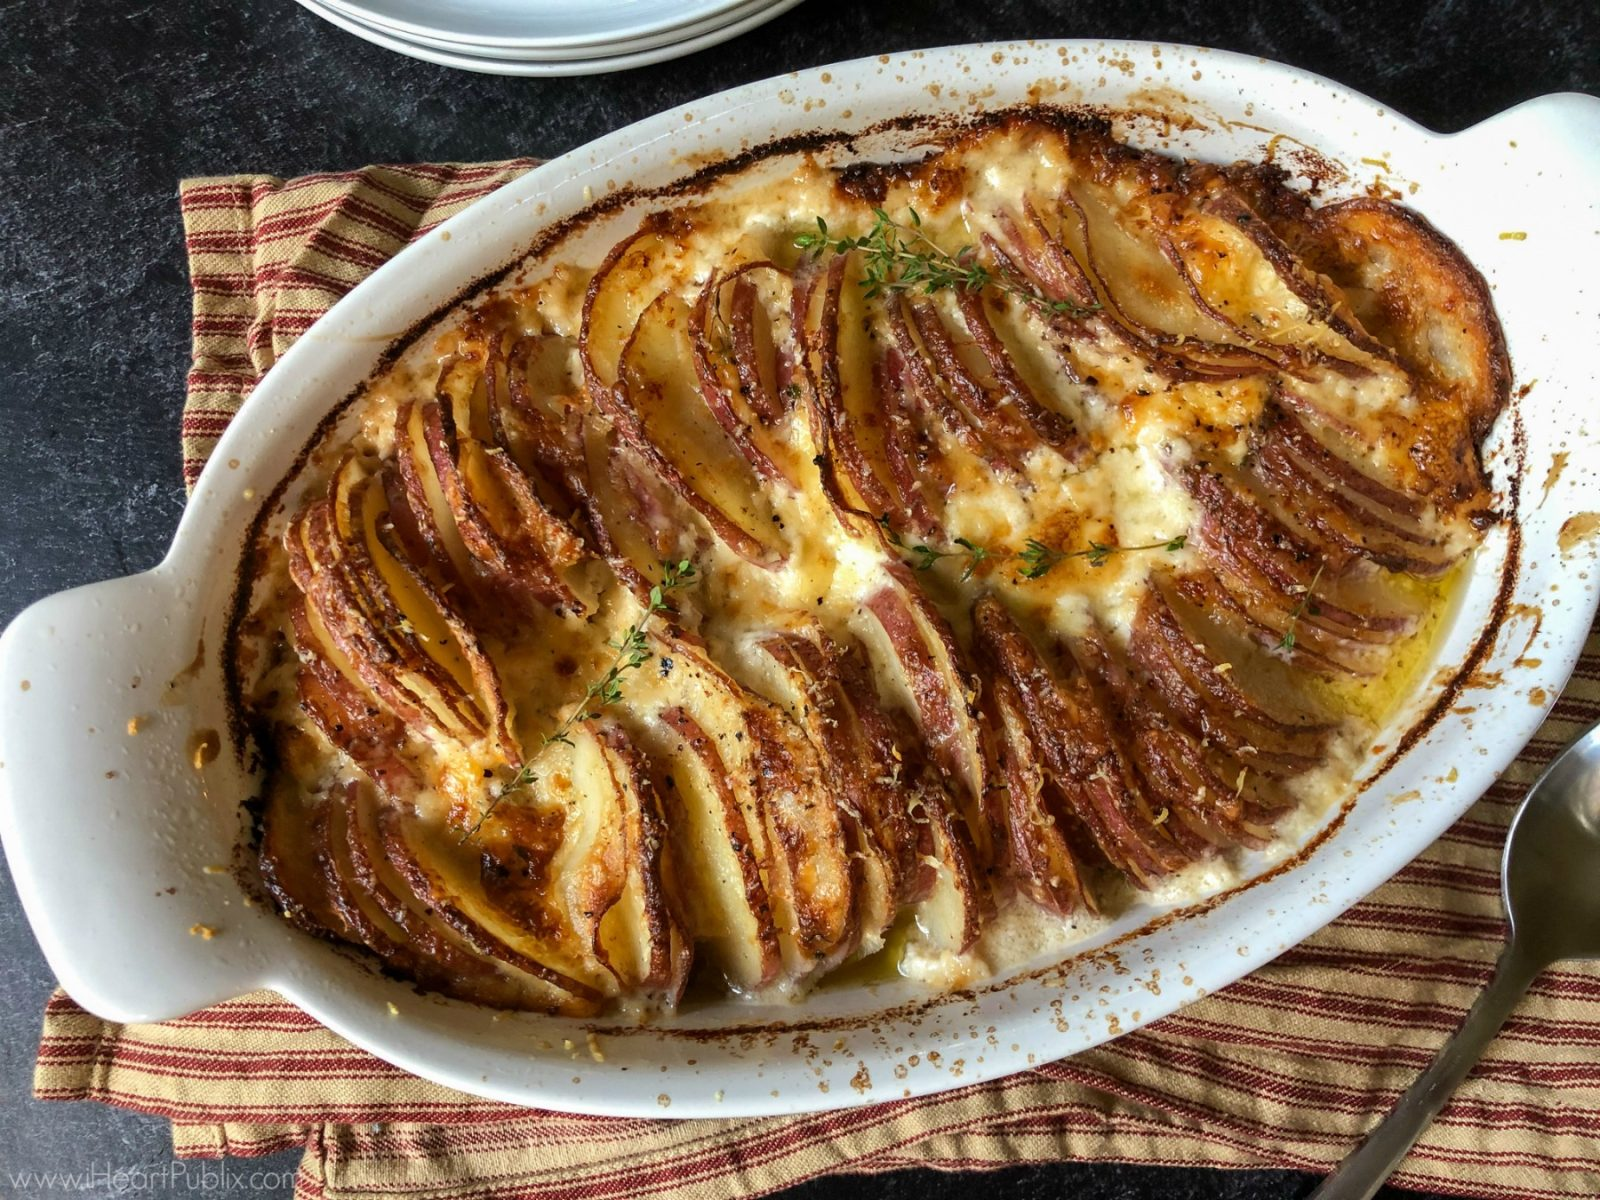 Hellmann's Au Gratin Potatoes - Whip Up An Amazing Side & Save At Publix on I Heart Publix 2